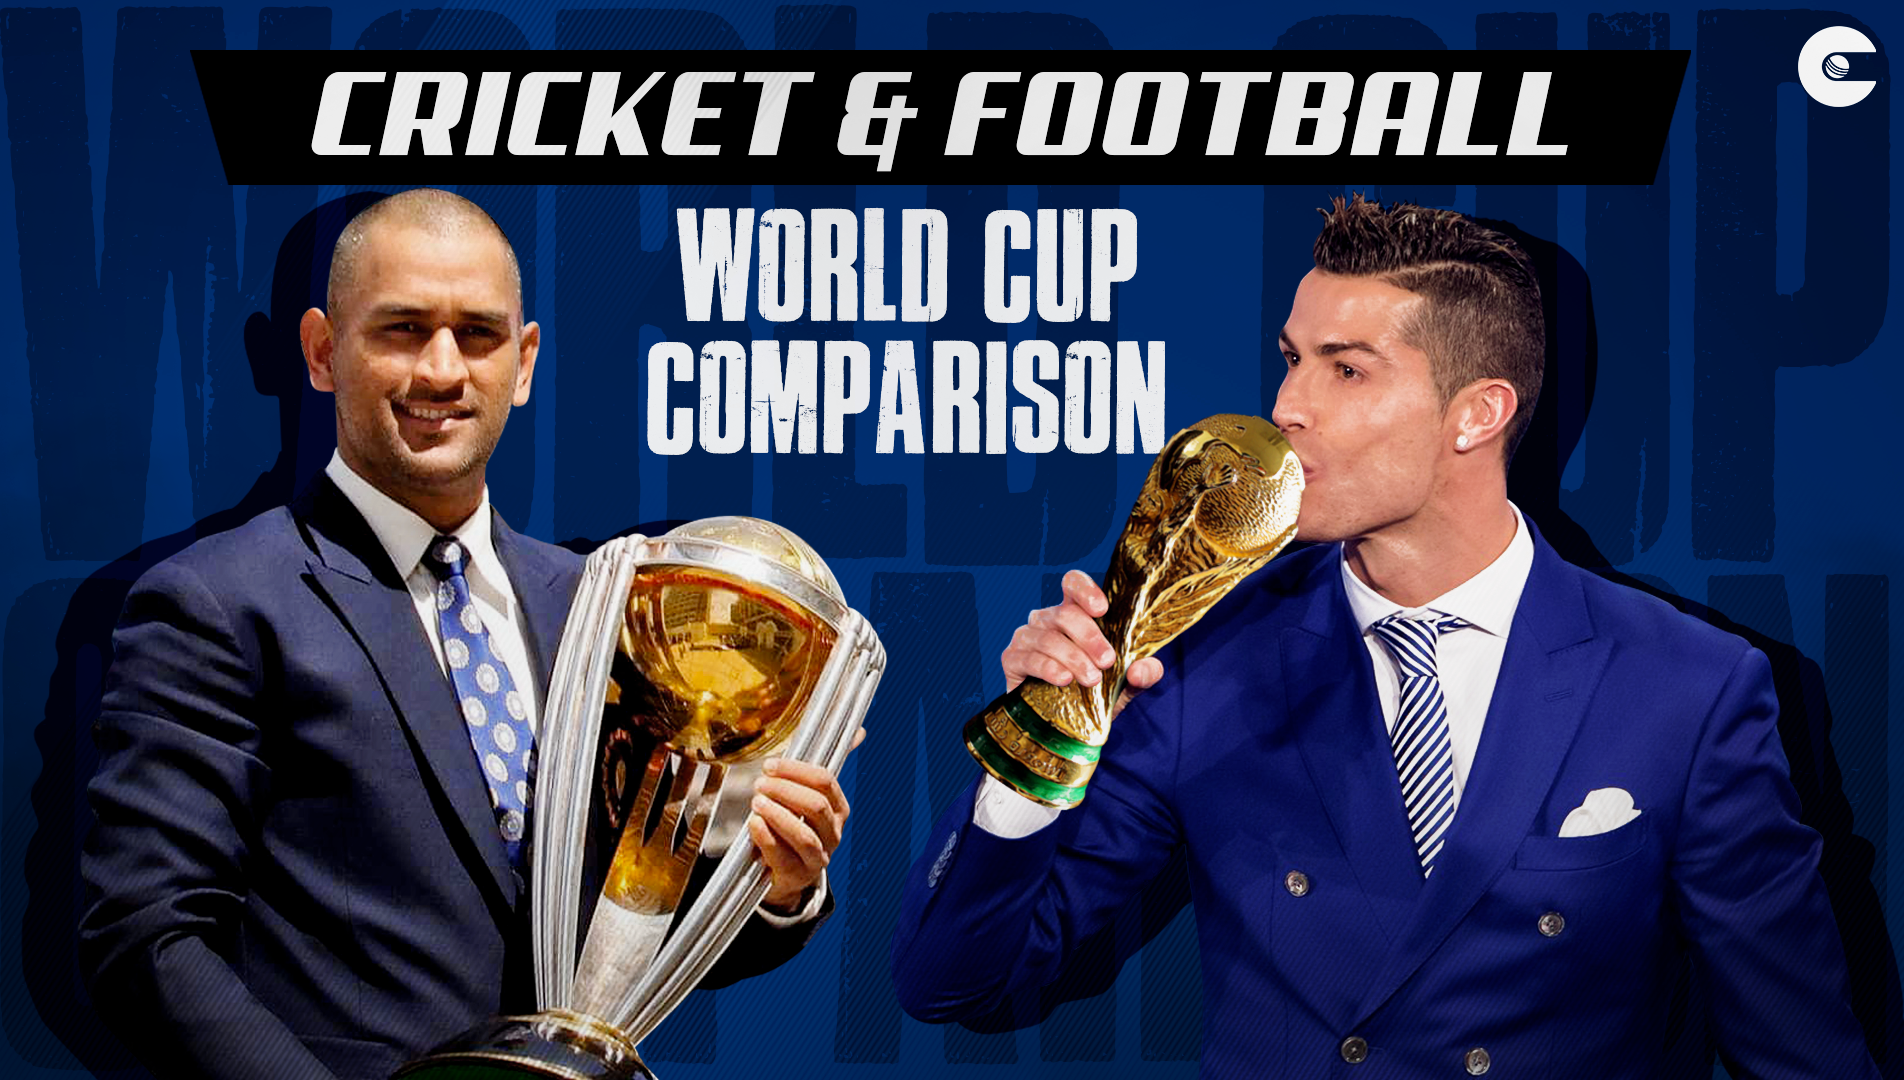 A genial comparison between the FIFA Football World Cup and ICC Cricket World Cup